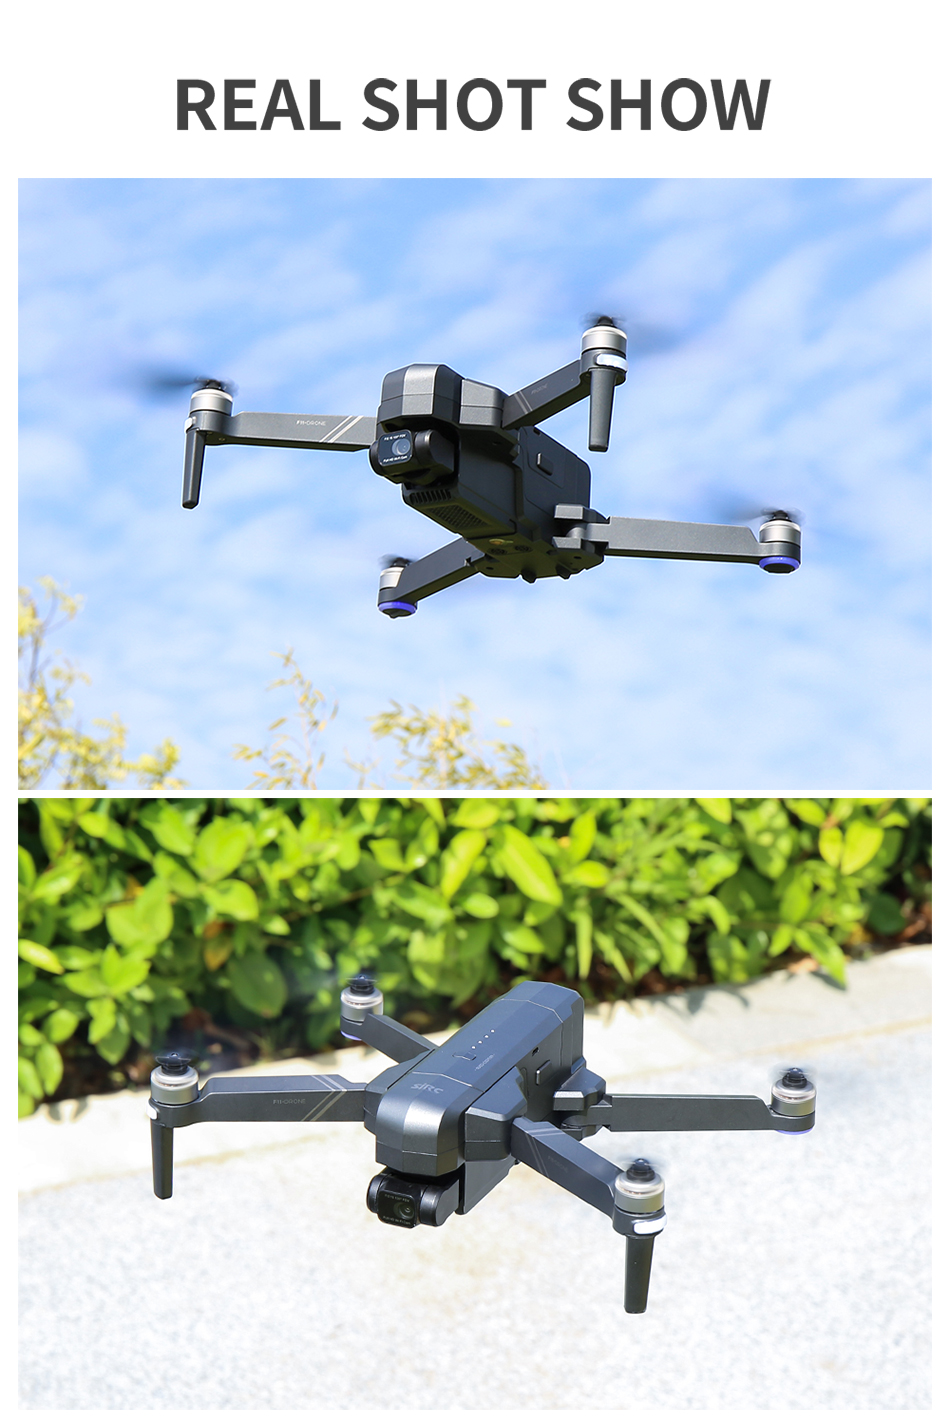 U1160bc4350d64f47bd8dcdd2848ce029d - NEW SJRC F11S 4K PRO Video Camera Drone Professional GPS 2Axis Mechanical EIS Gimbal Quadcopter Brushless Dron Max Flight RC 3KM